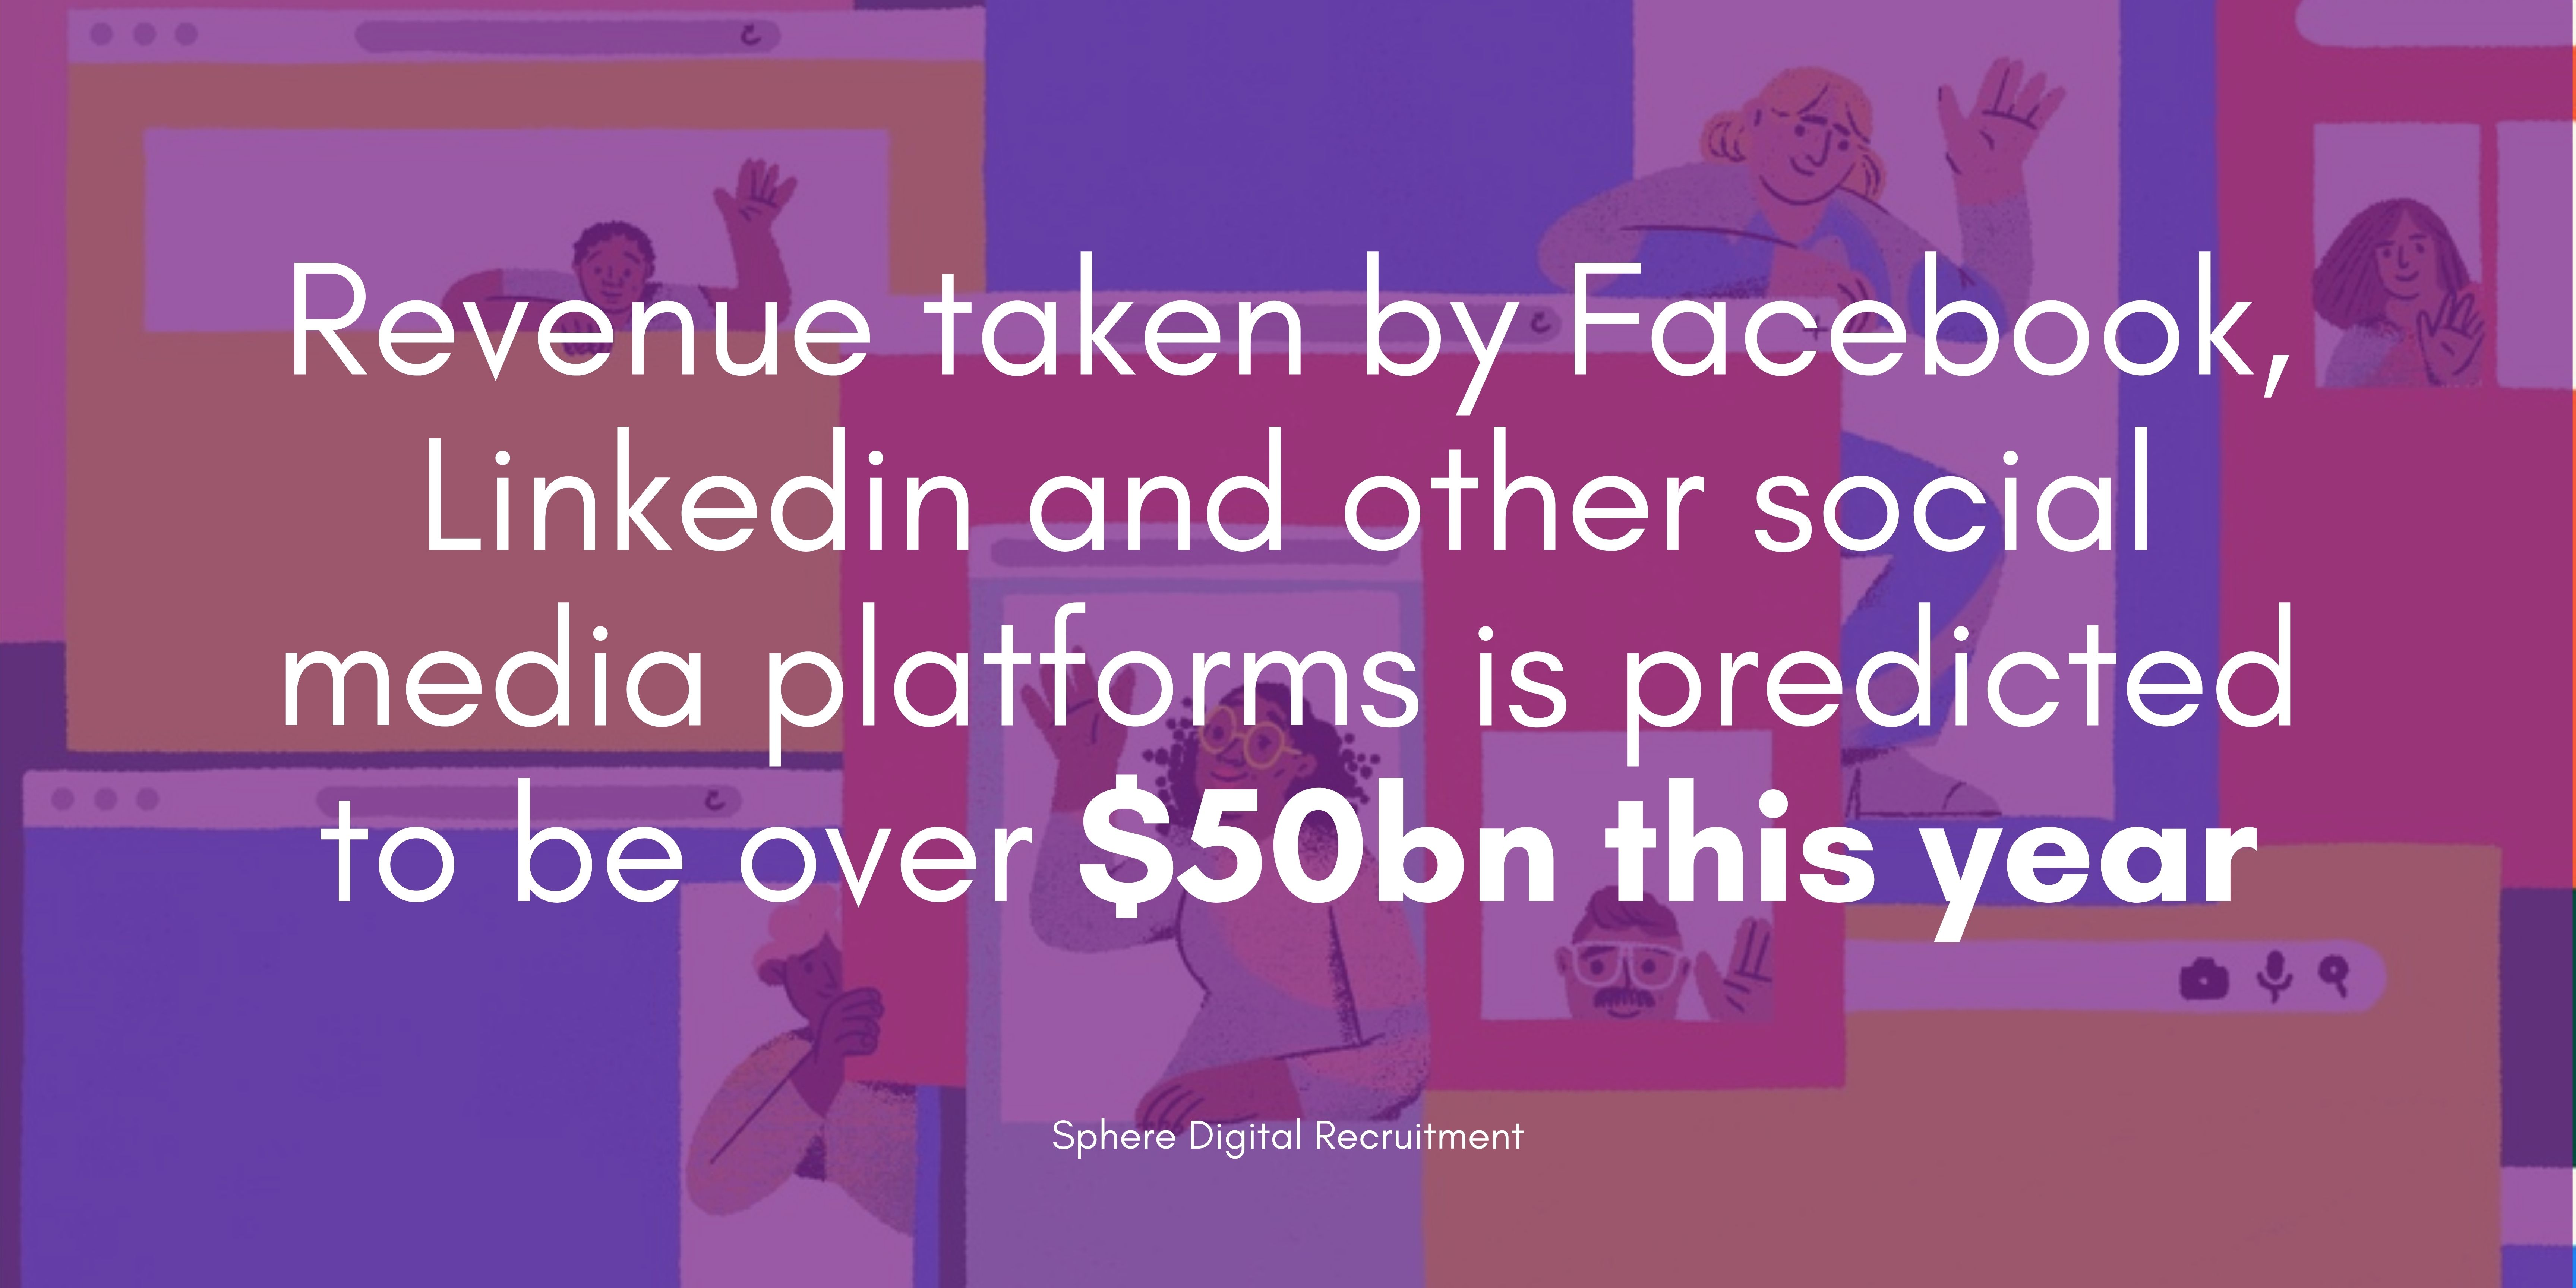 text: Revenue taken by Facebook, Linkedin and other social media platforms is predicted to be over $50bn this year